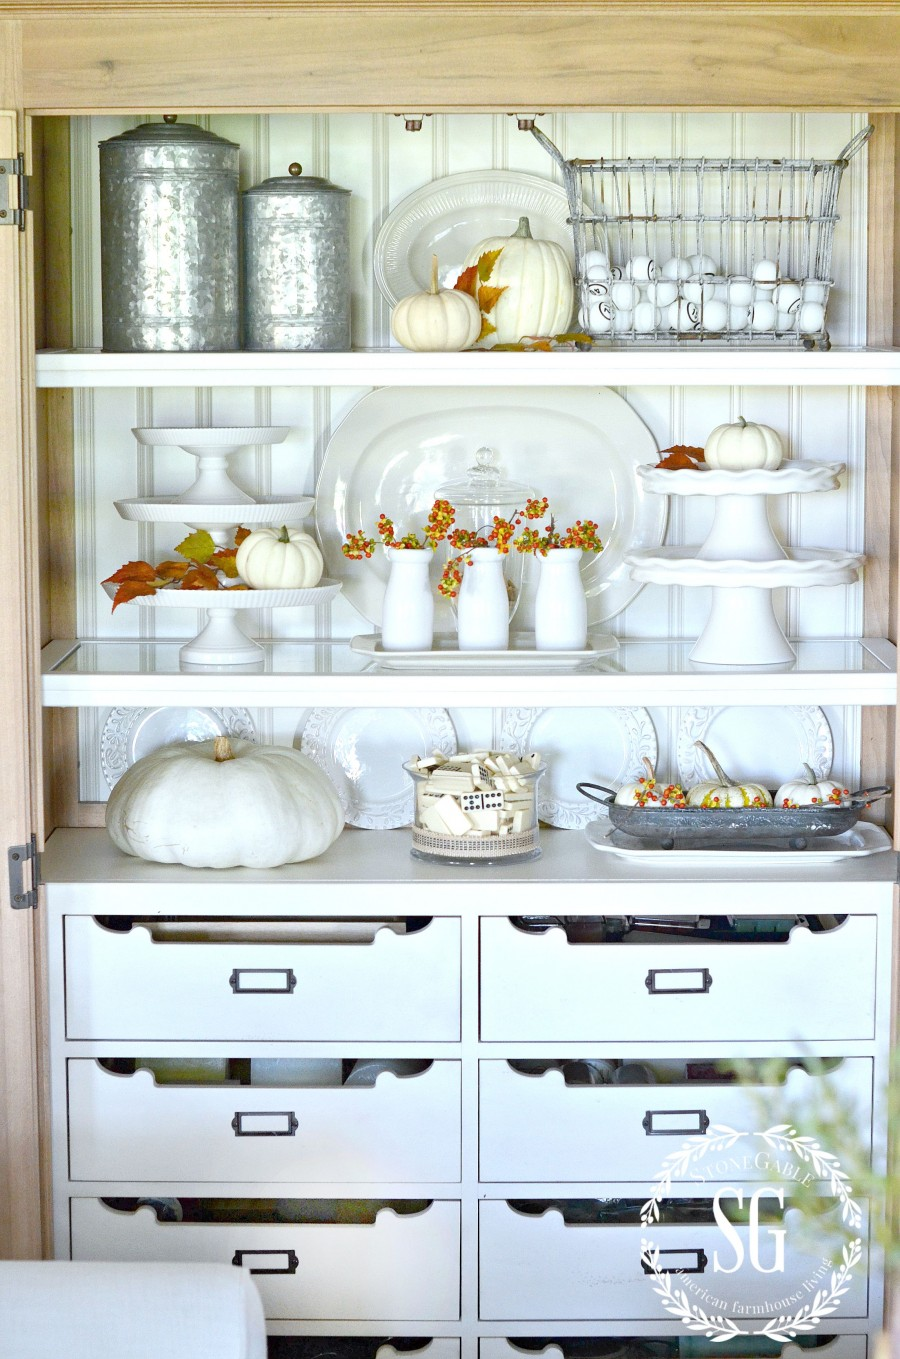 DESIGNER TRICKS FOR BEAUTIFULLY ARRANGED SHELVES- We can do this! -stonegableblog.com